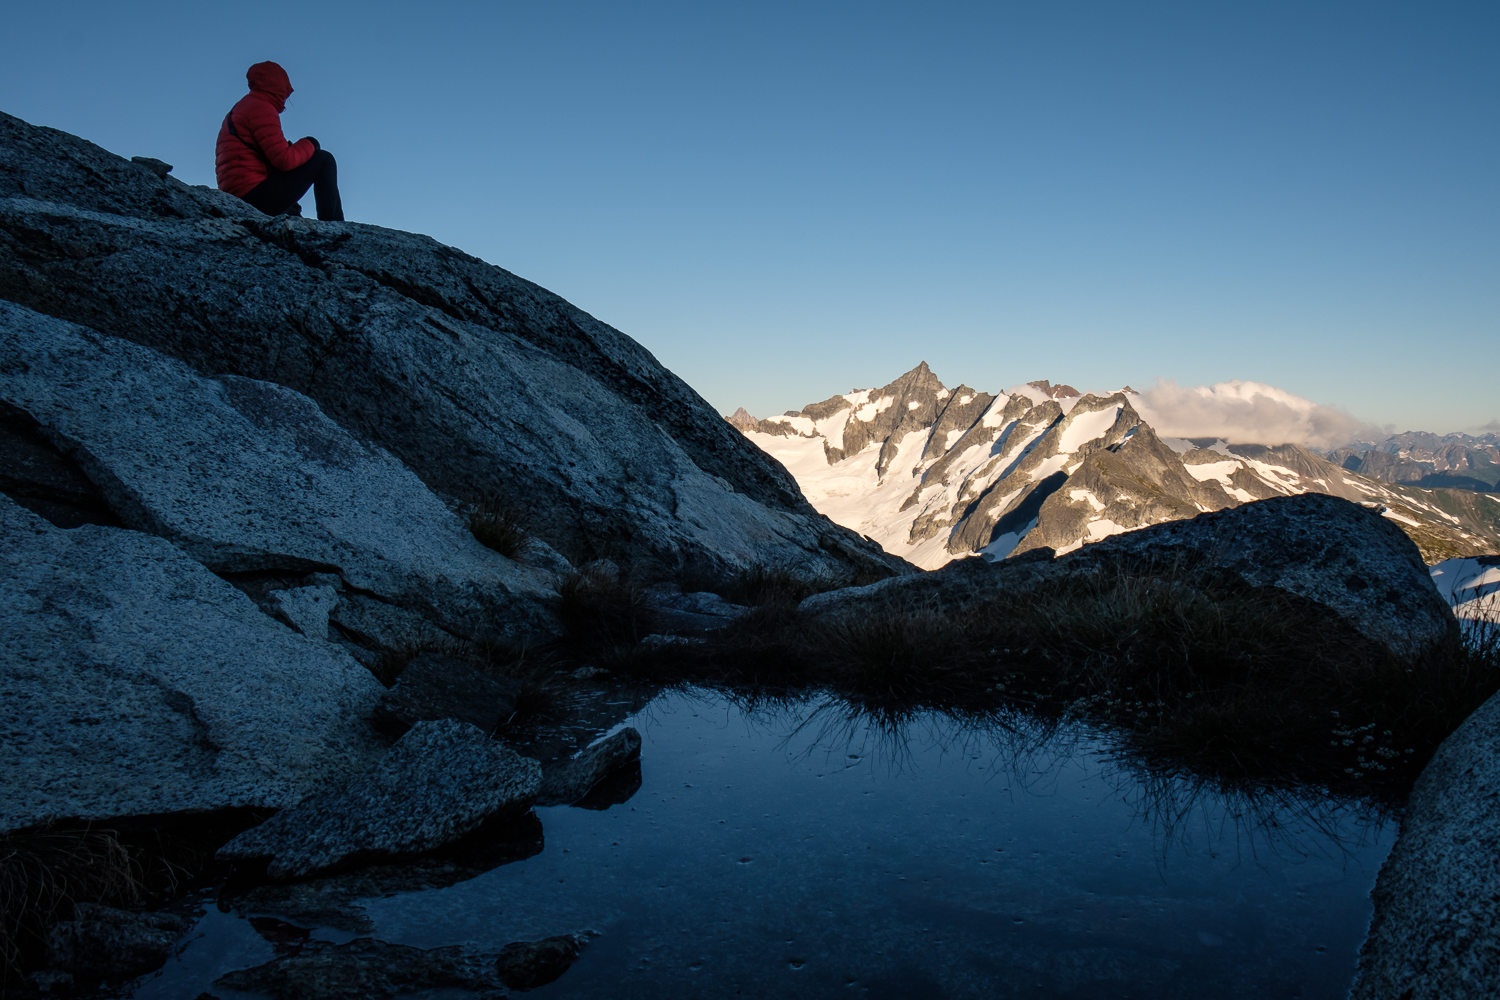 Enjoying the afternoon light on Torment and Forbidden from camp beneath the summit of Eldorado Peak, North Cascades National Park.